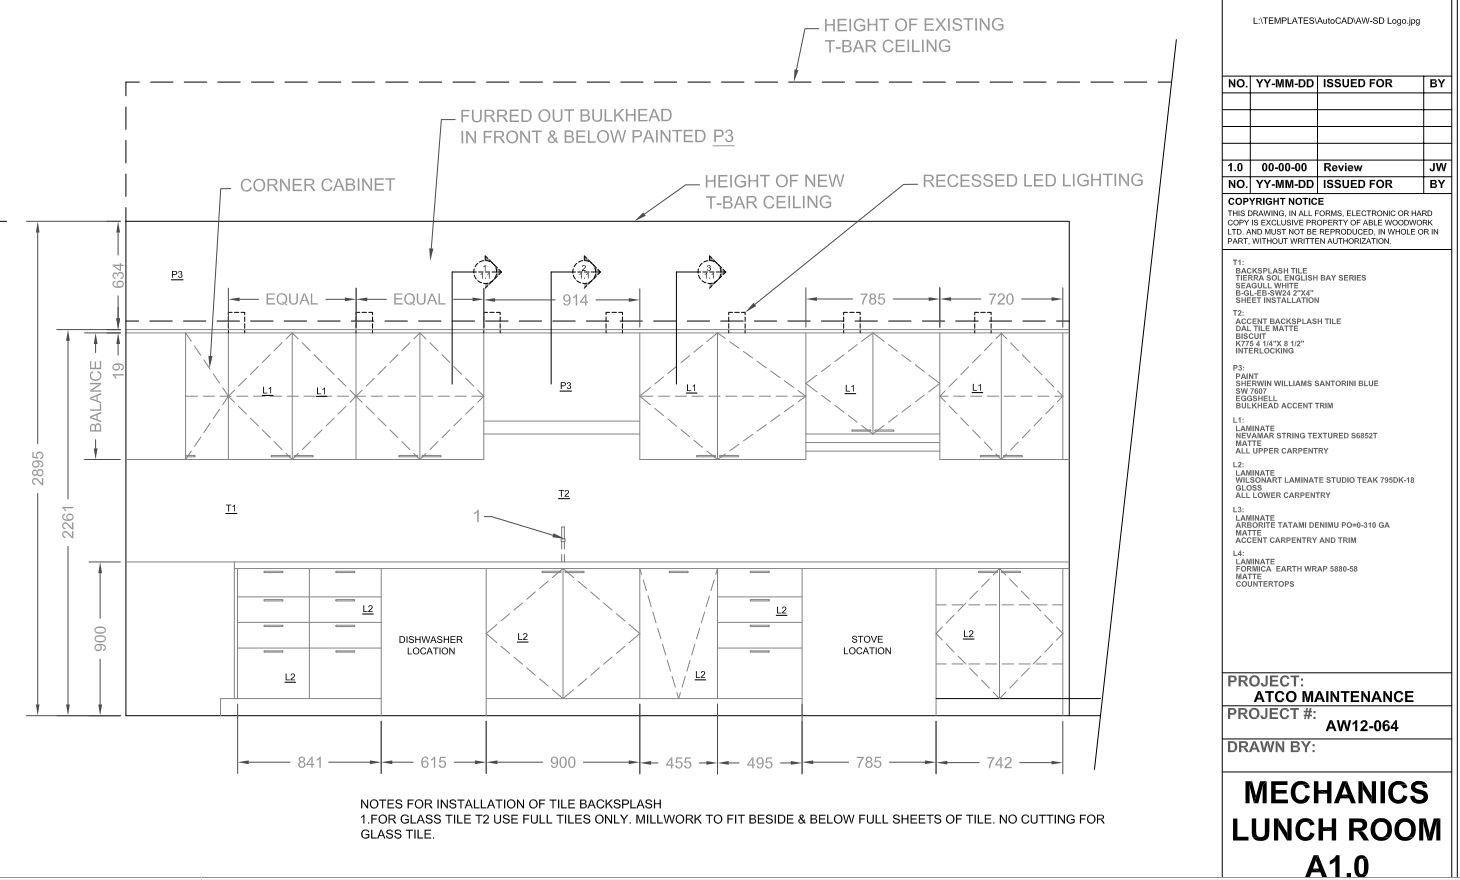 Cad design cad engineering services work portfolio by for Electrical as built drawings sample